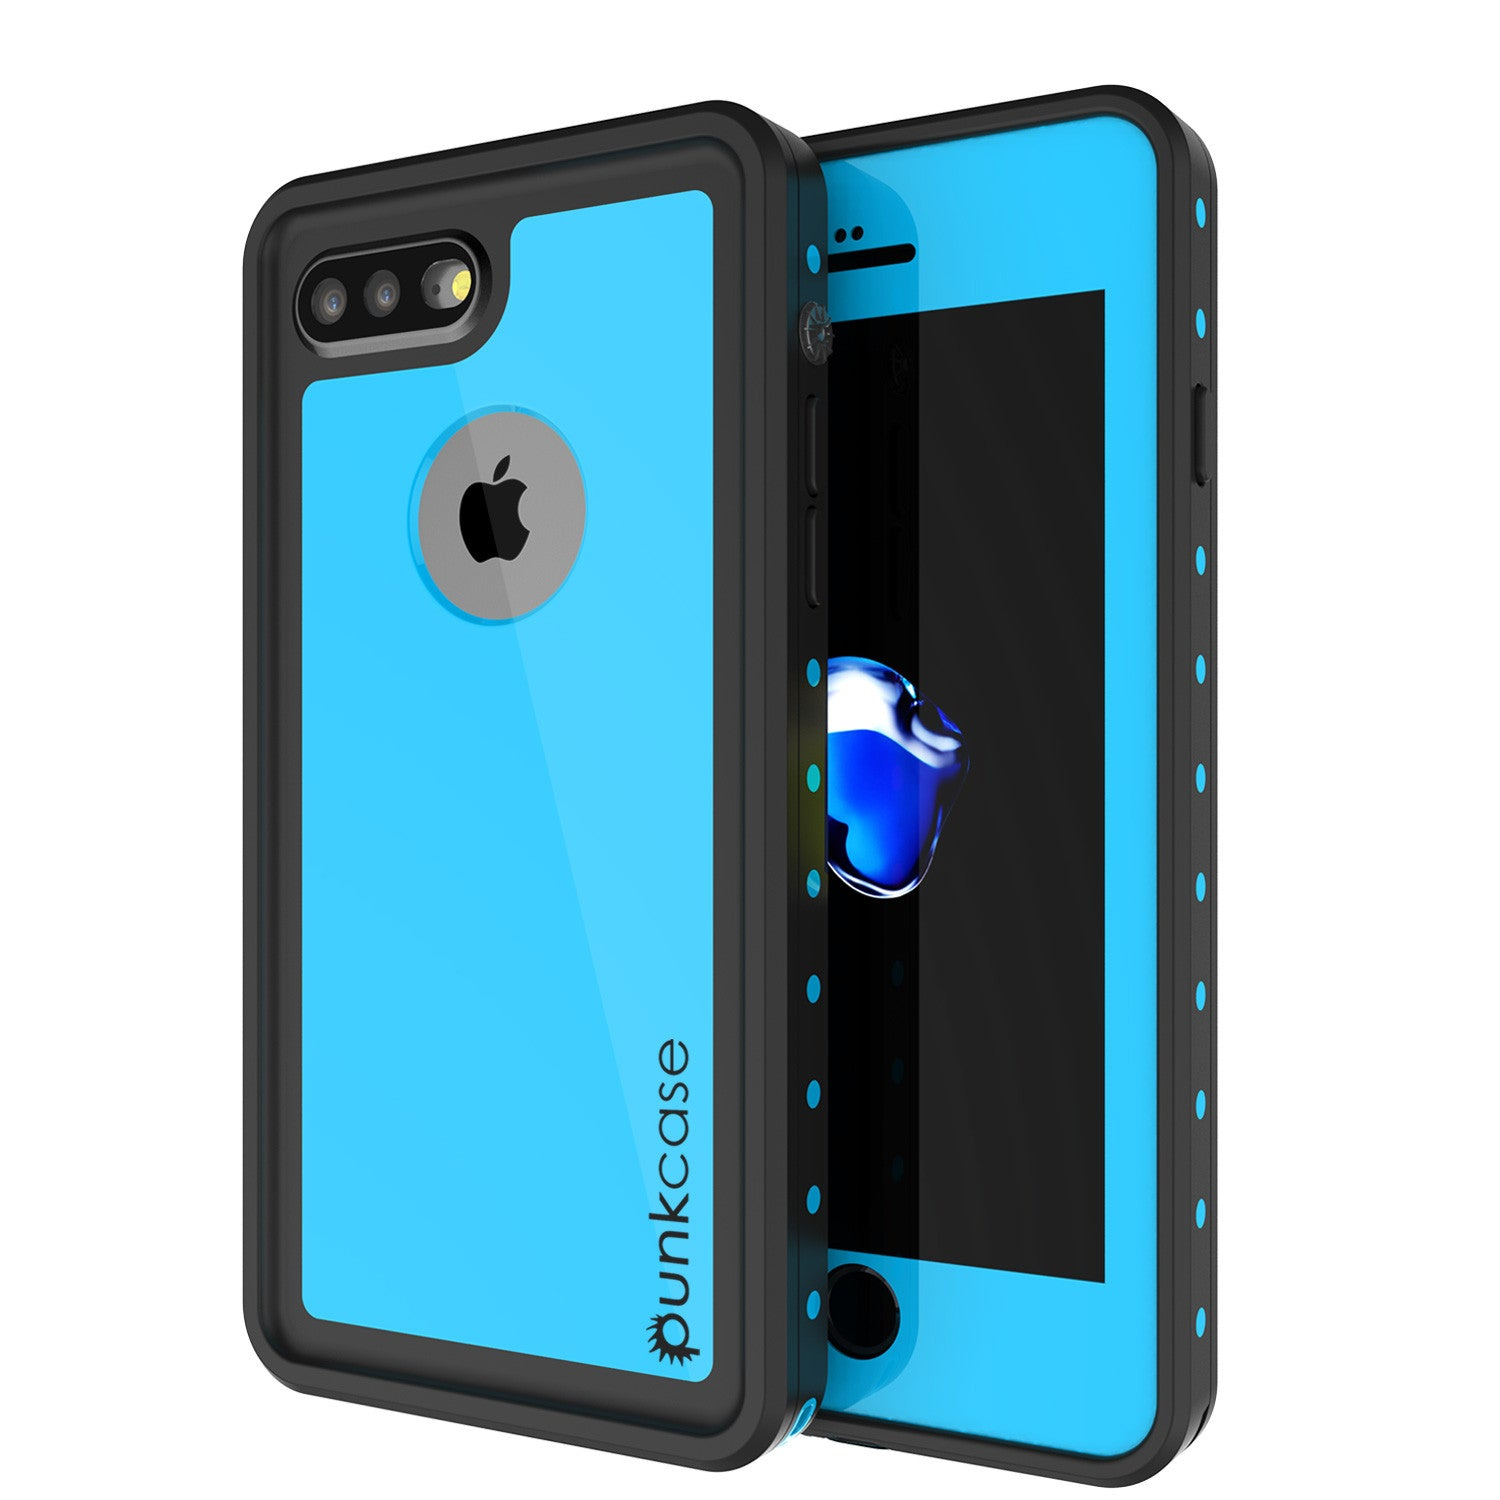 iPhone 7+ Plus Waterproof IP68 Case, Punkcase [Light Blue] [StudStar Series] [Slim Fit] [Dirtproof]